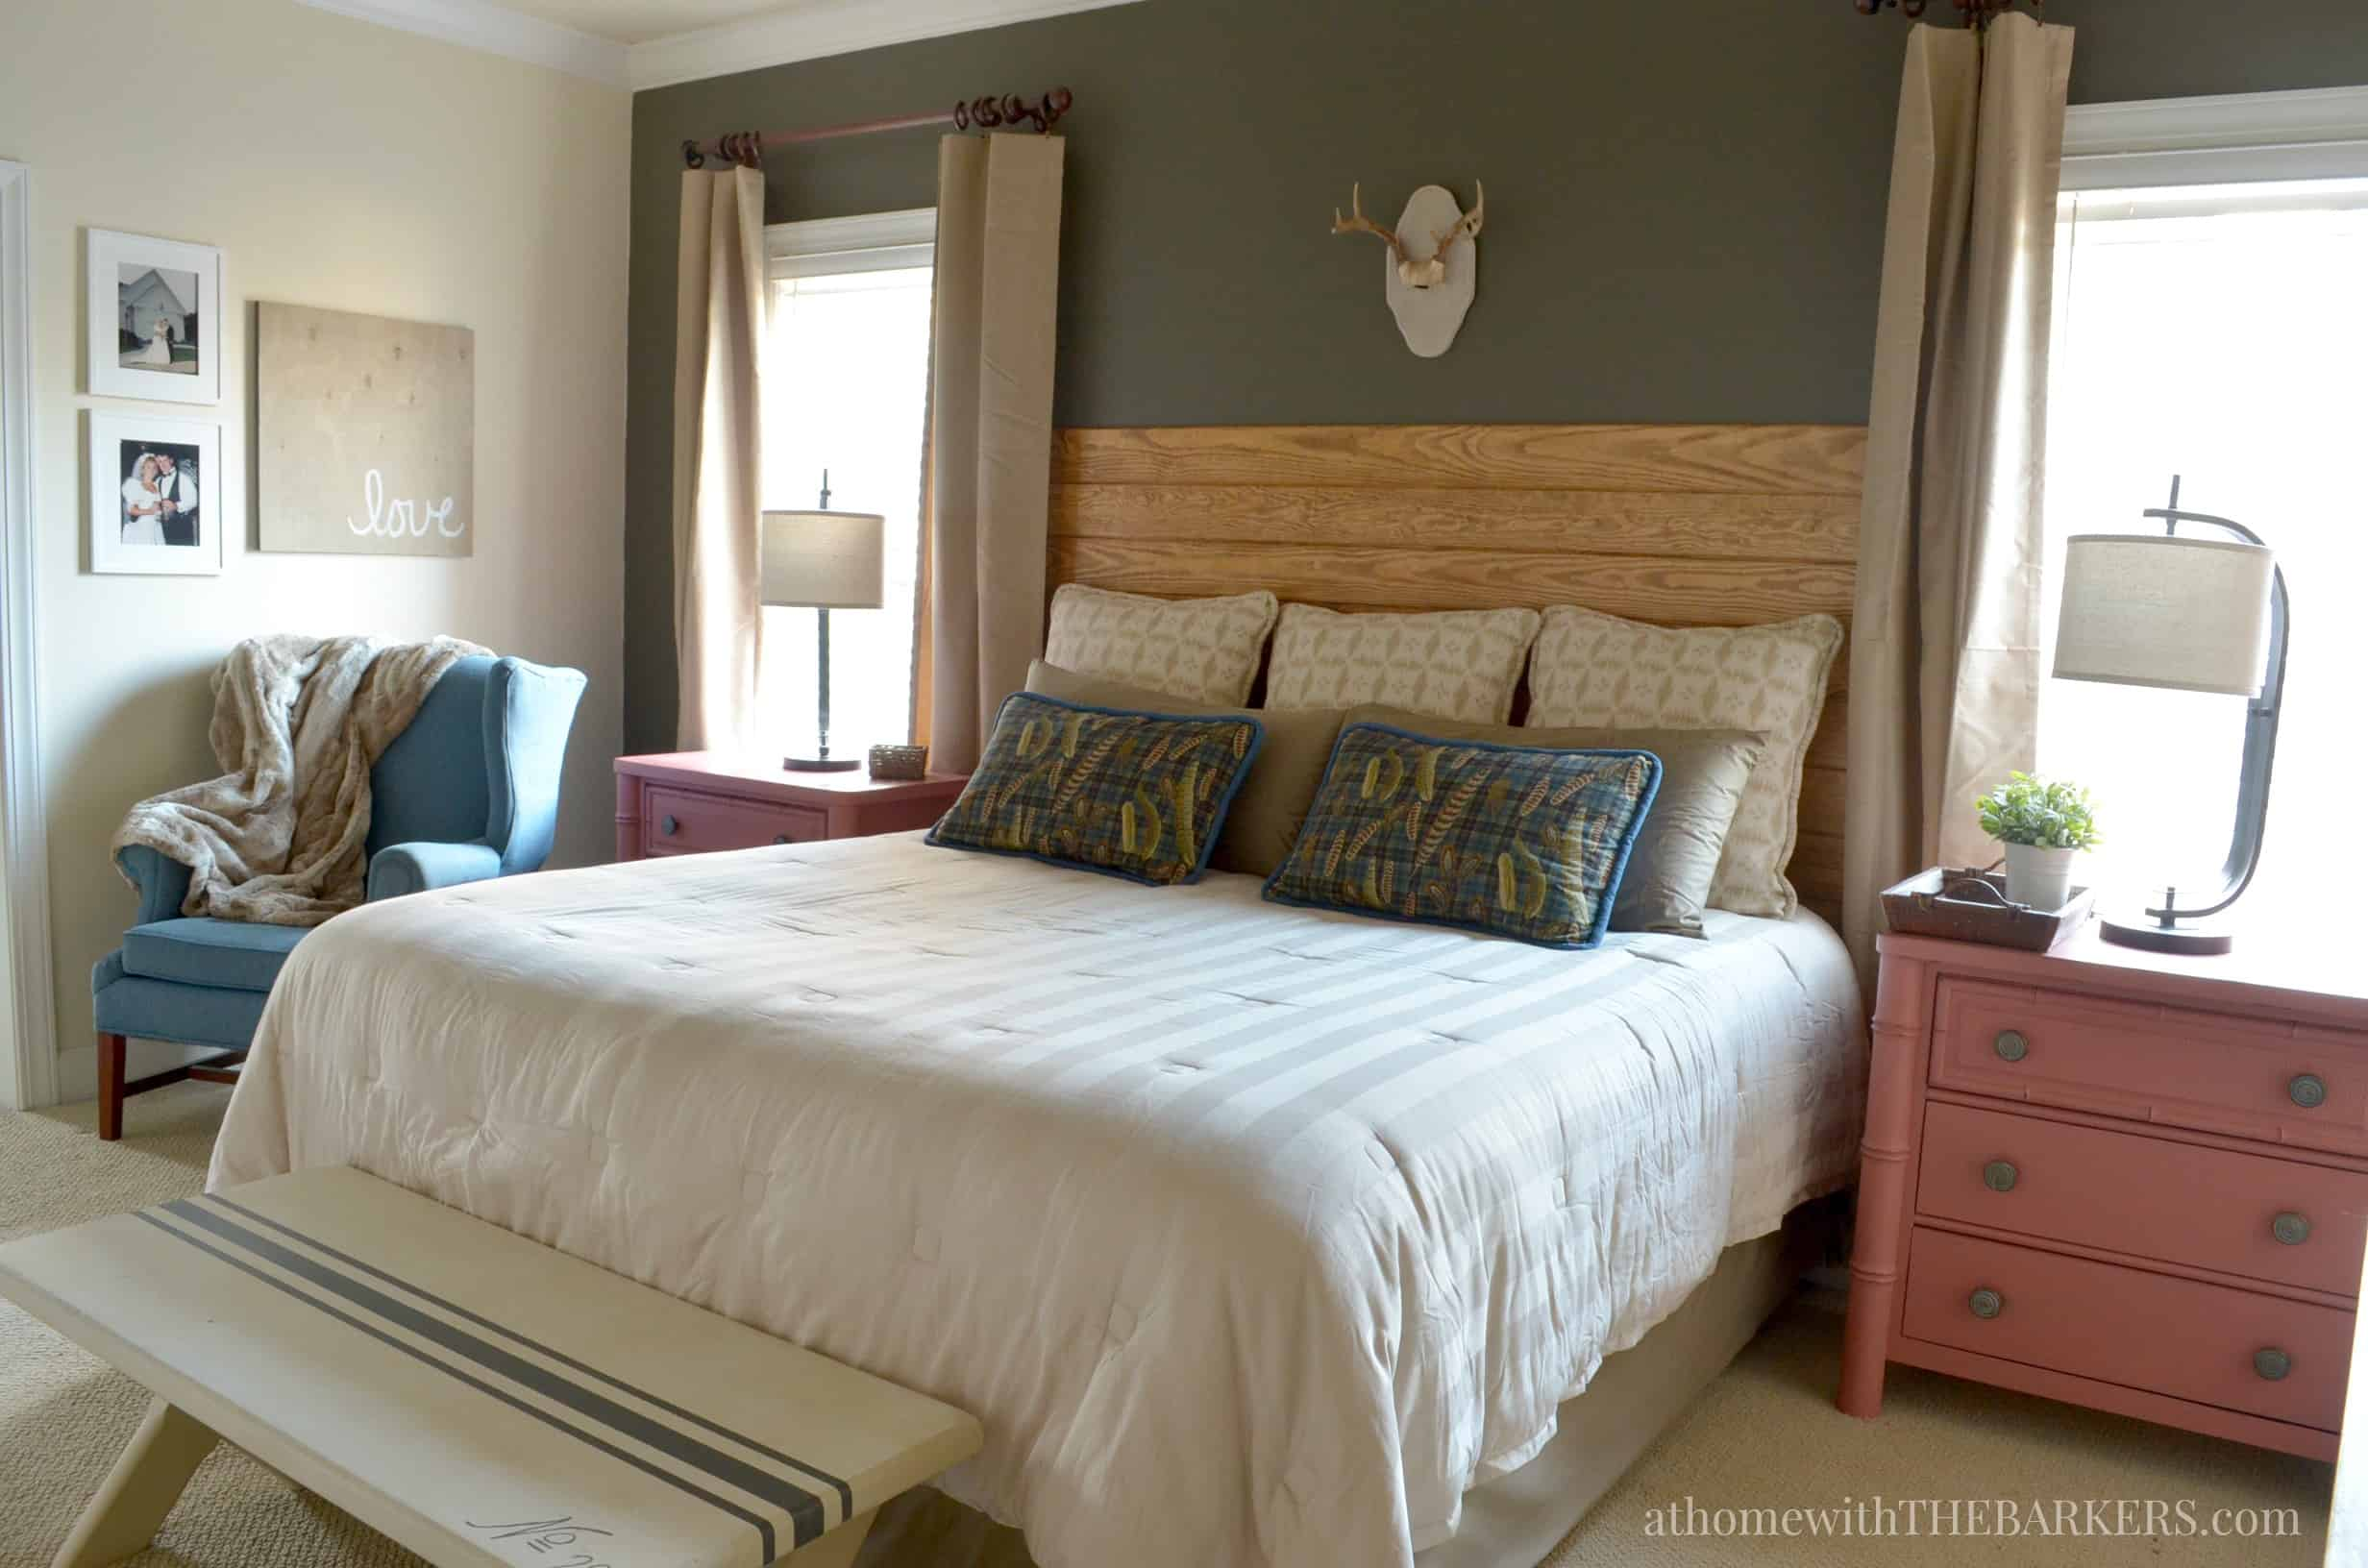 Master Bedroom Makeover master bedroom makeover update - at home with the barkers